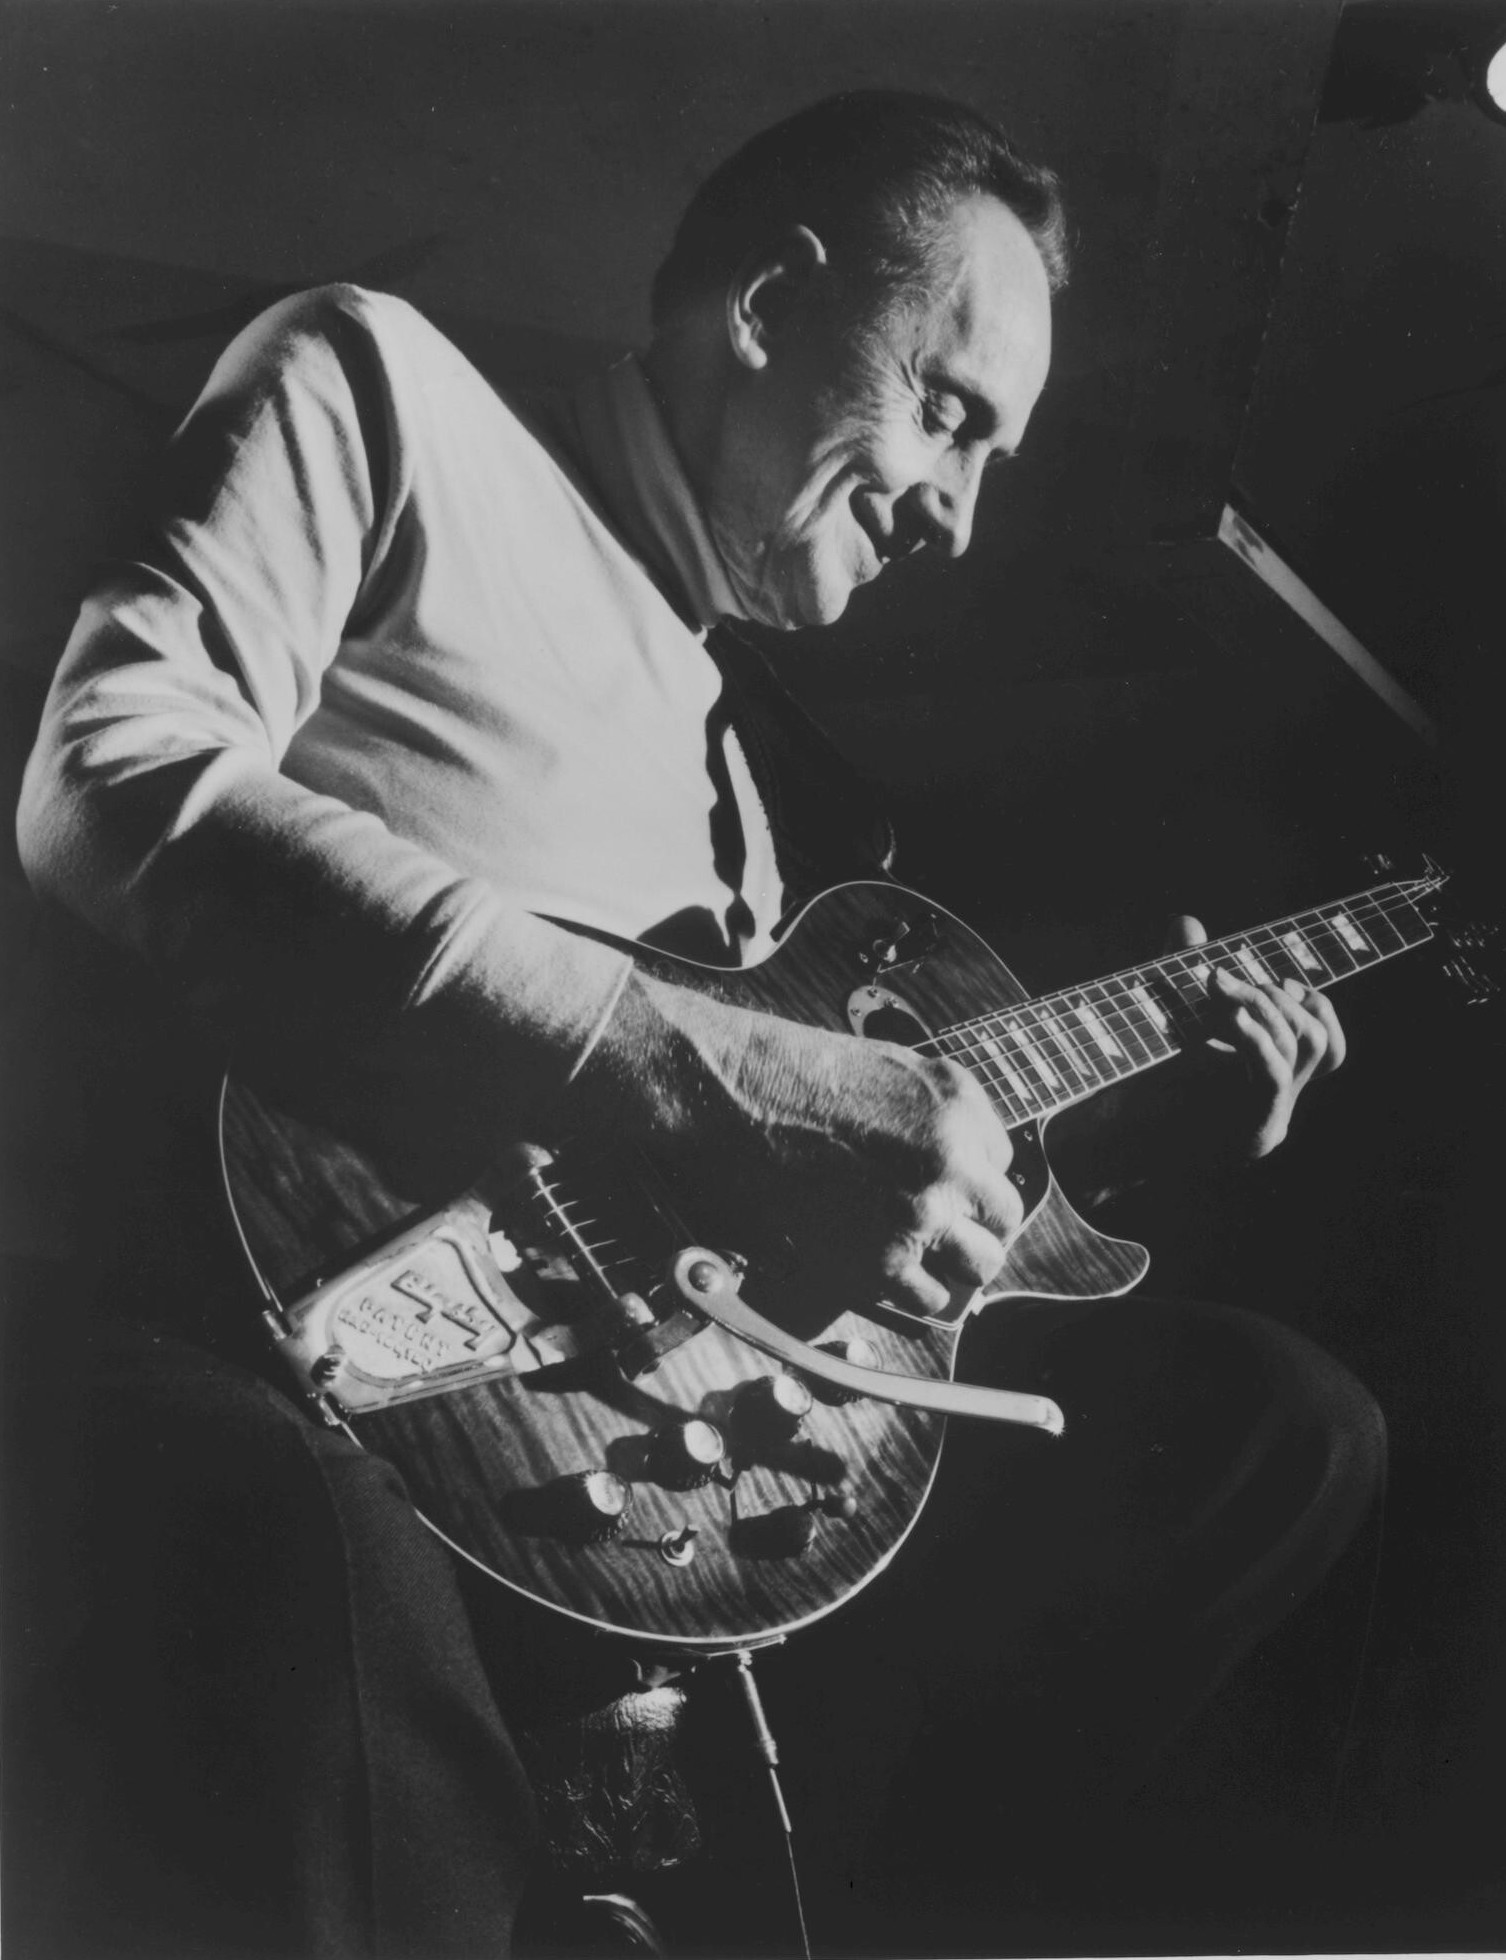 <table class=&quot;lightbox&quot;><tr><td colspan=2 class=&quot;lightbox-title&quot;>Les Paul Performs</td></tr><tr><td colspan=2 class=&quot;lightbox-caption&quot;>Legendary guitarist Les Paul performs in New York City in the 1980s. </td></tr><tr><td colspan=2 class=&quot;lightbox-spacer&quot;></td></tr><tr class=&quot;lightbox-detail&quot;><td class=&quot;cell-title&quot;>Source: </td><td class=&quot;cell-value&quot;>From the Library of Congress William P. Gottlieb Collection. <br /><a href=&quot;https://www.loc.gov/item/gottlieb.16231/&quot; target=&quot;_blank&quot;>Library of Congress</a></td></tr><tr class=&quot;filler-row&quot;><td colspan=2>&nbsp;</td></tr></table>